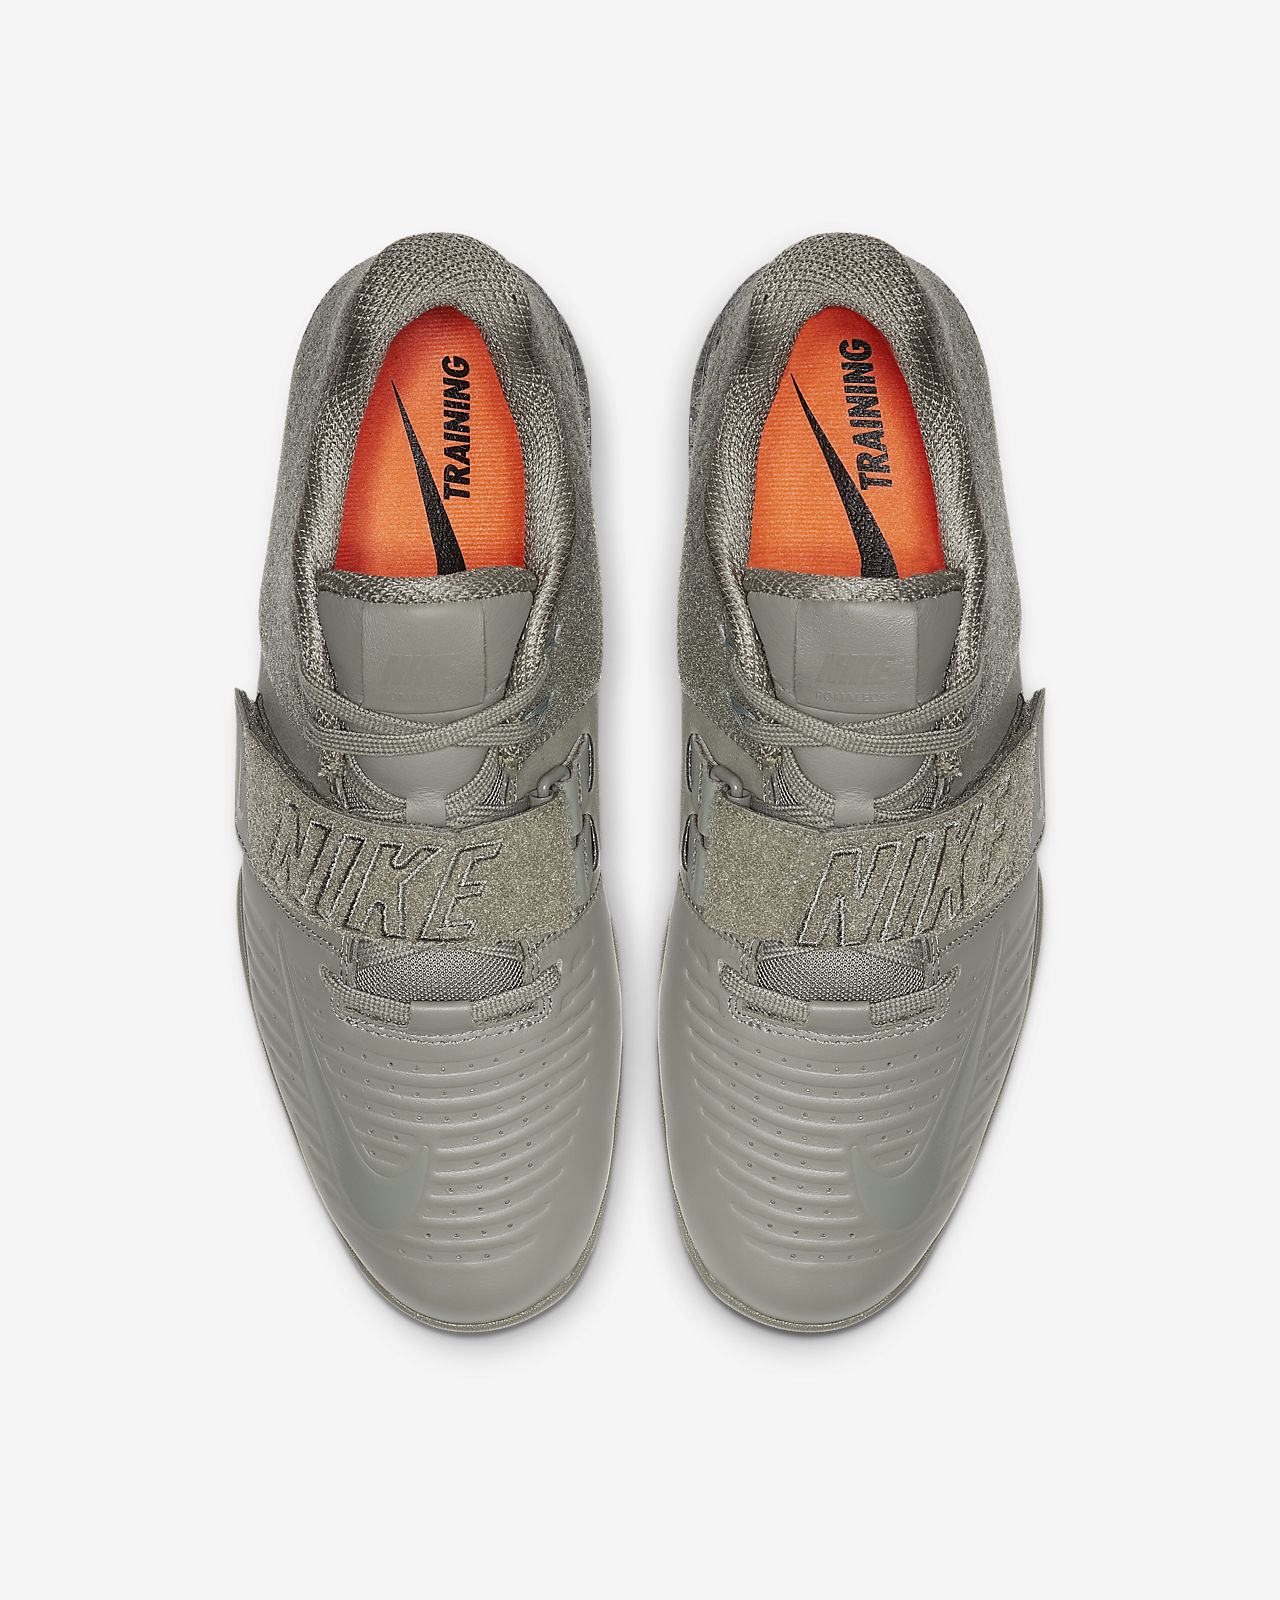 info for 8e0b6 aed20 ... Nike Romaleos 3 XD Patch Training Shoe